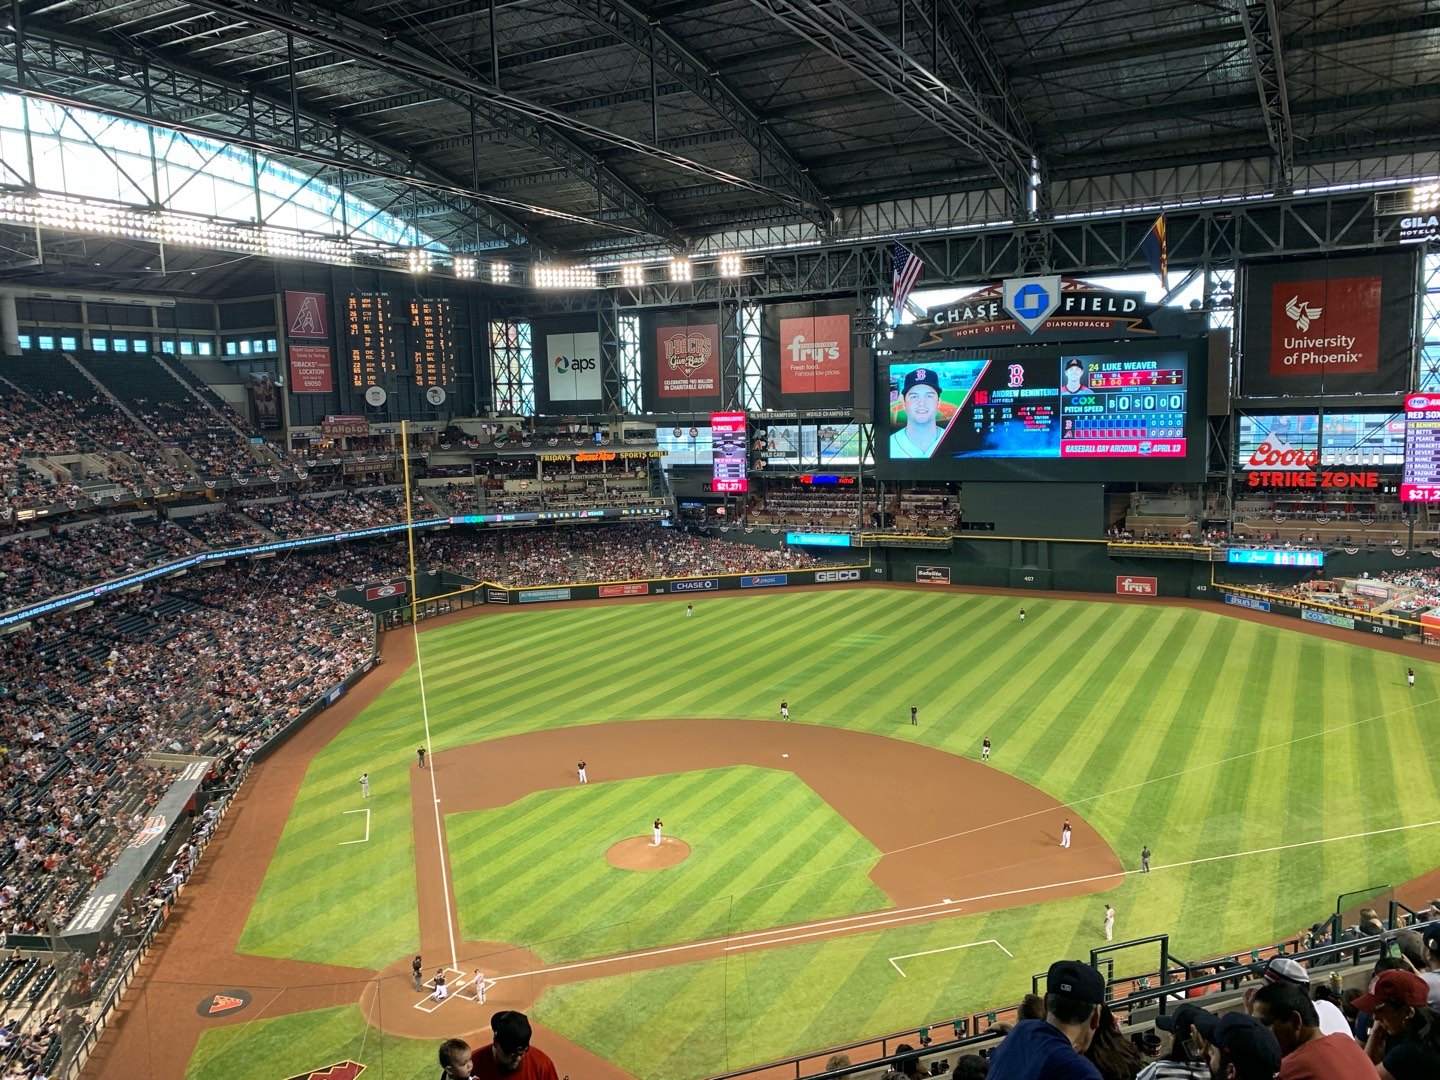 Chase Field Section 312 Row 14 Seat 17